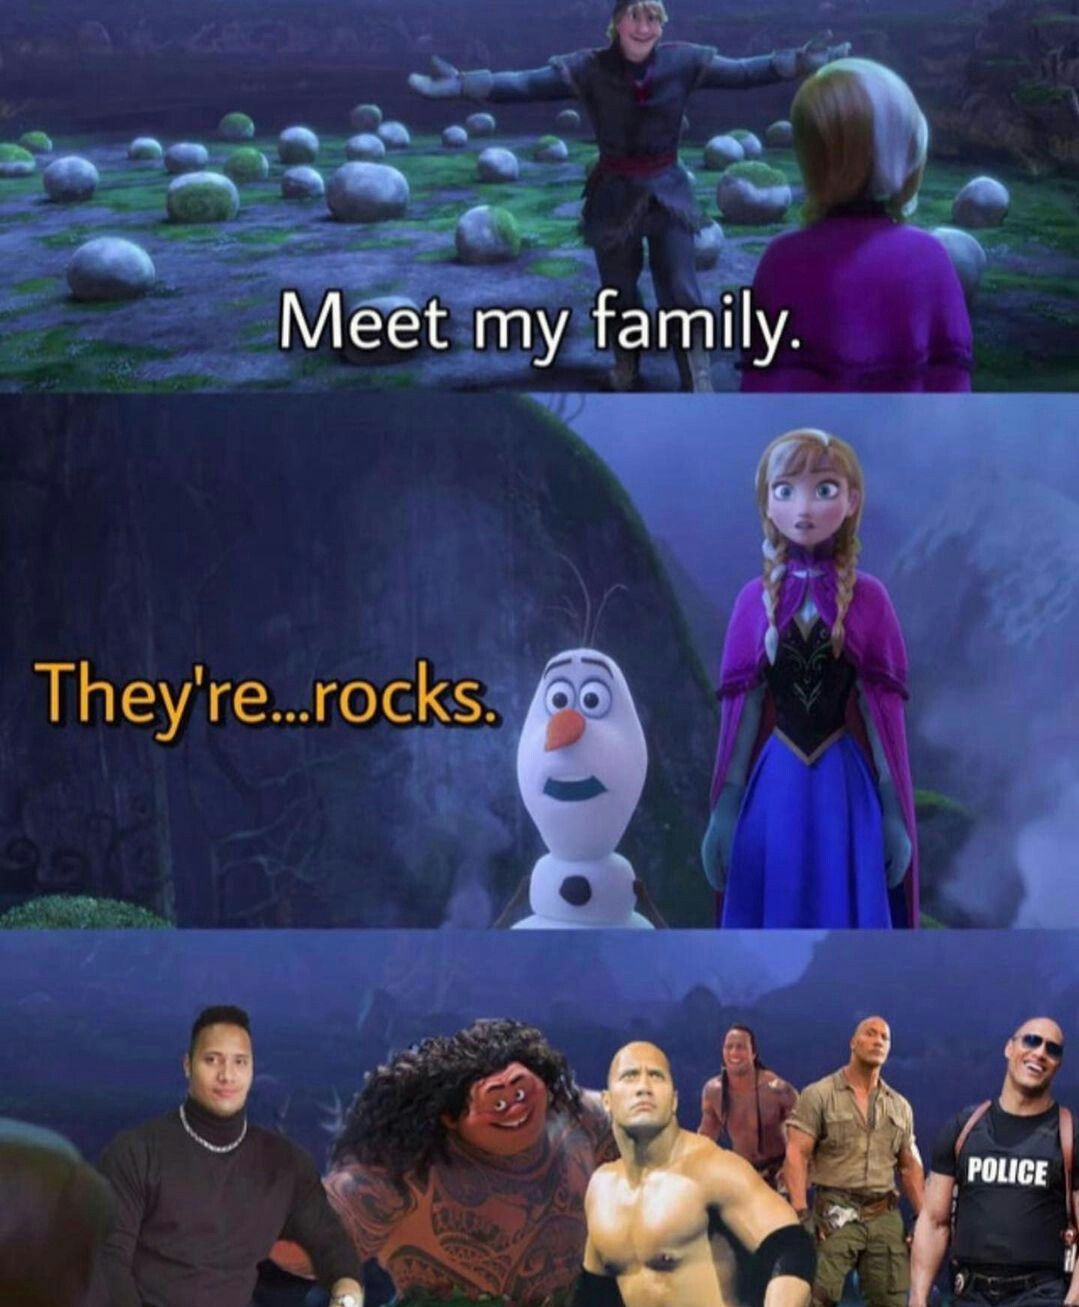 50 shades of The Rock